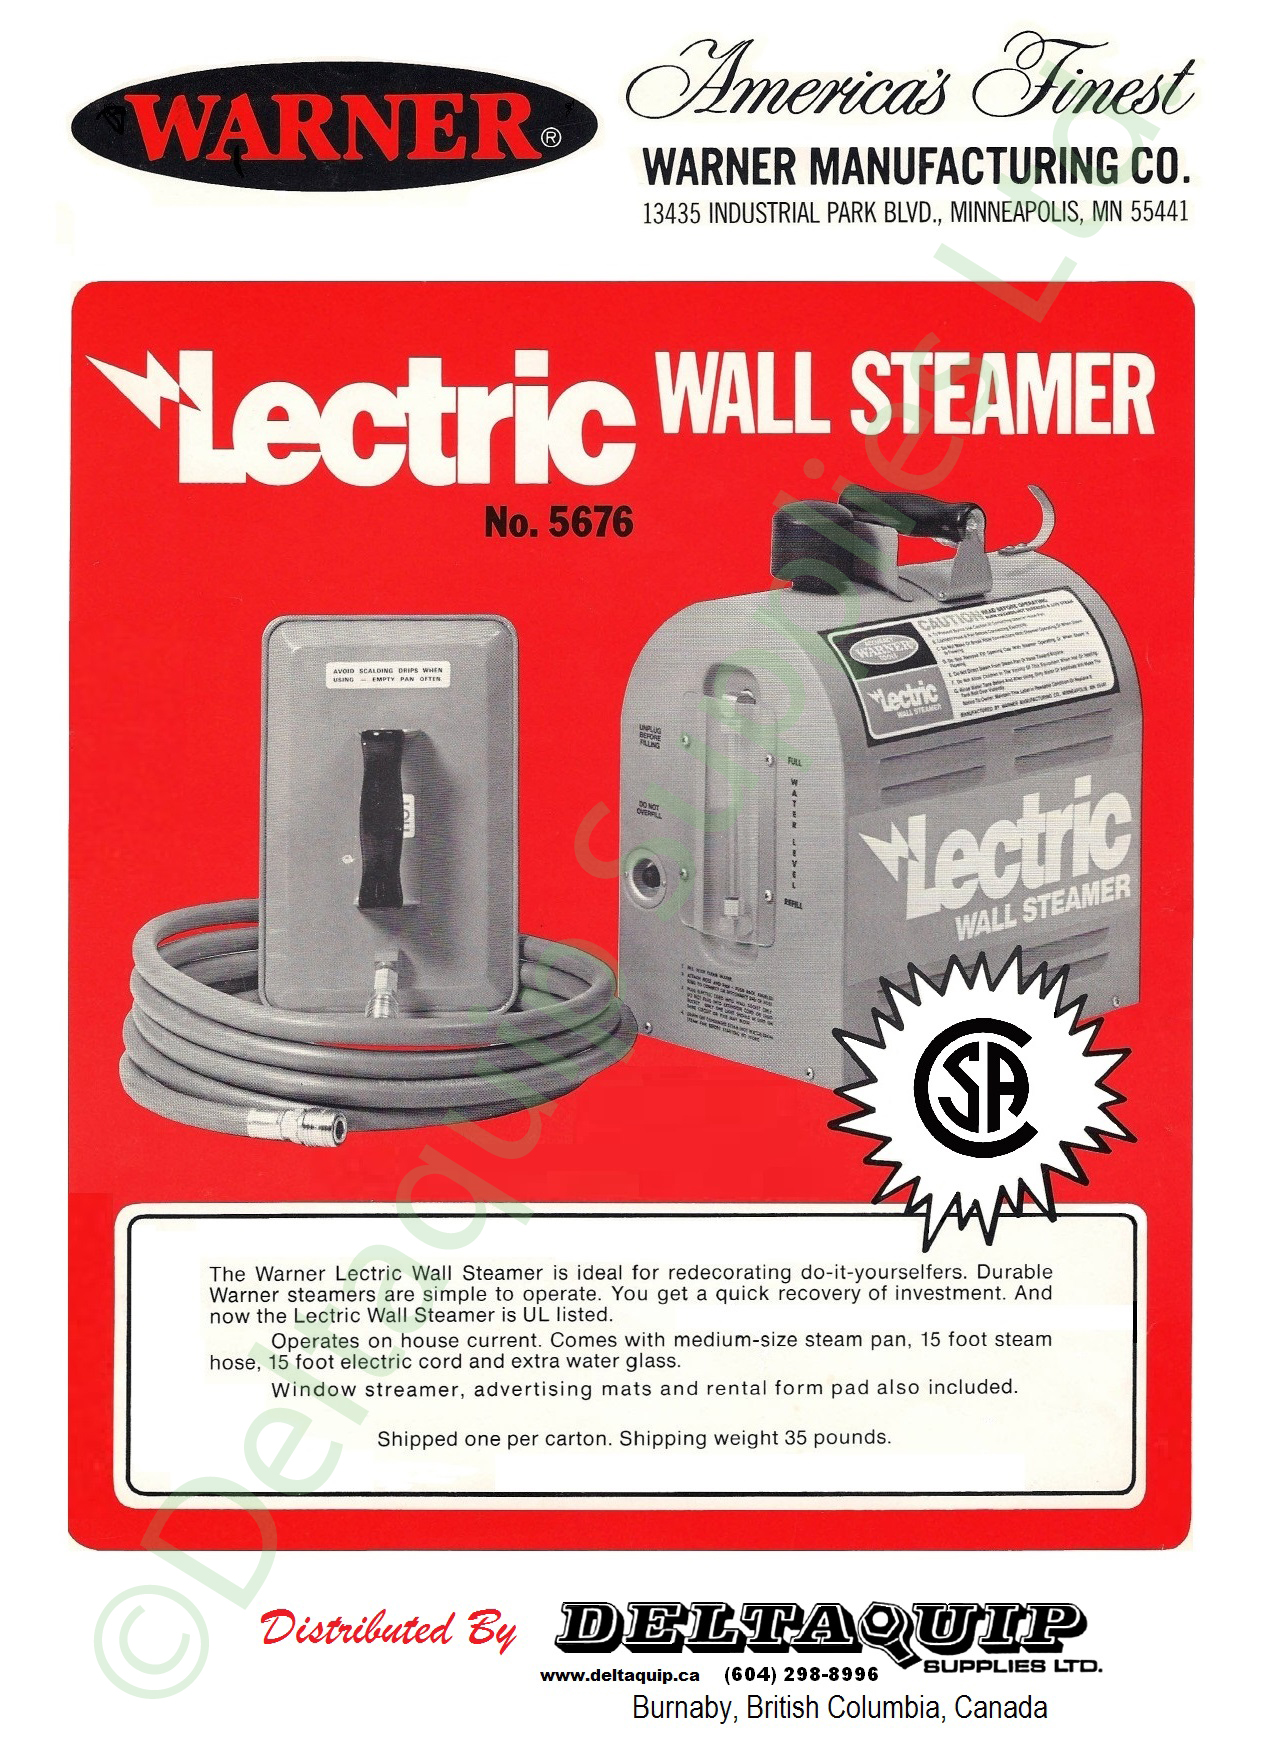 Lectric Wallpaper Steamer Deltaquip Supplies Ltd 1277x1754